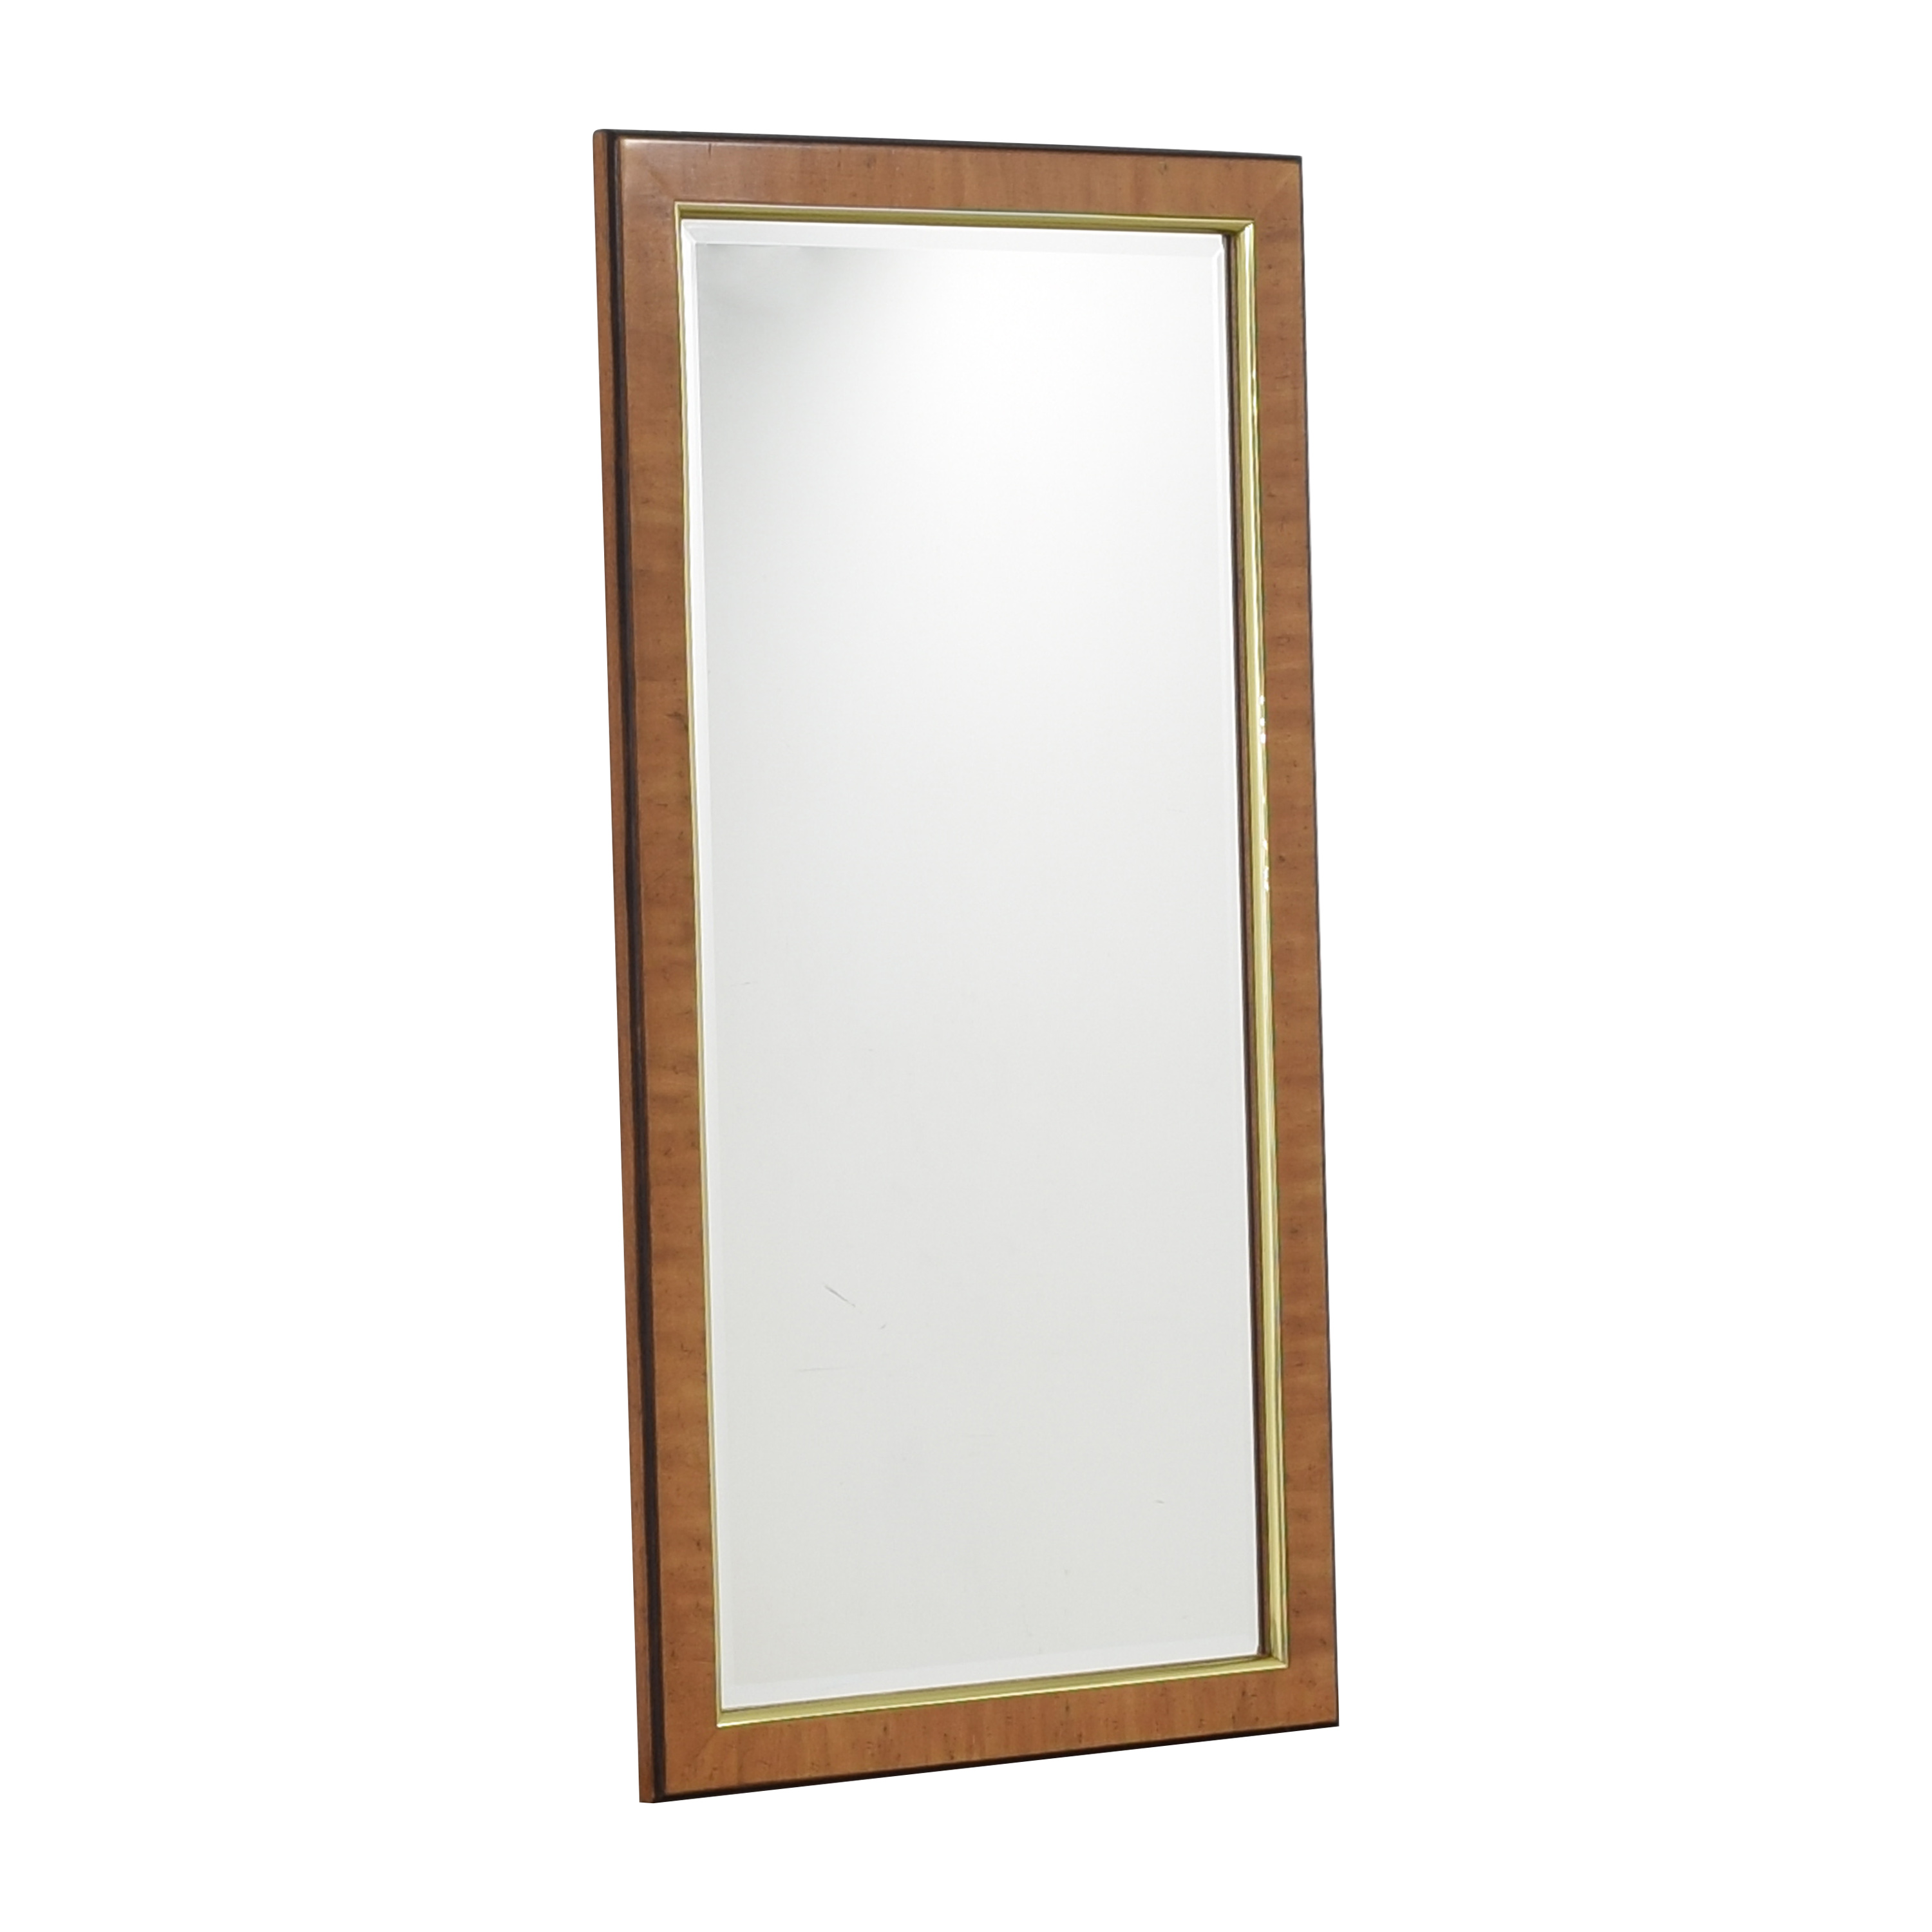 Drexel Heritage Drexel Heritage Avenues Collection Mirror on sale